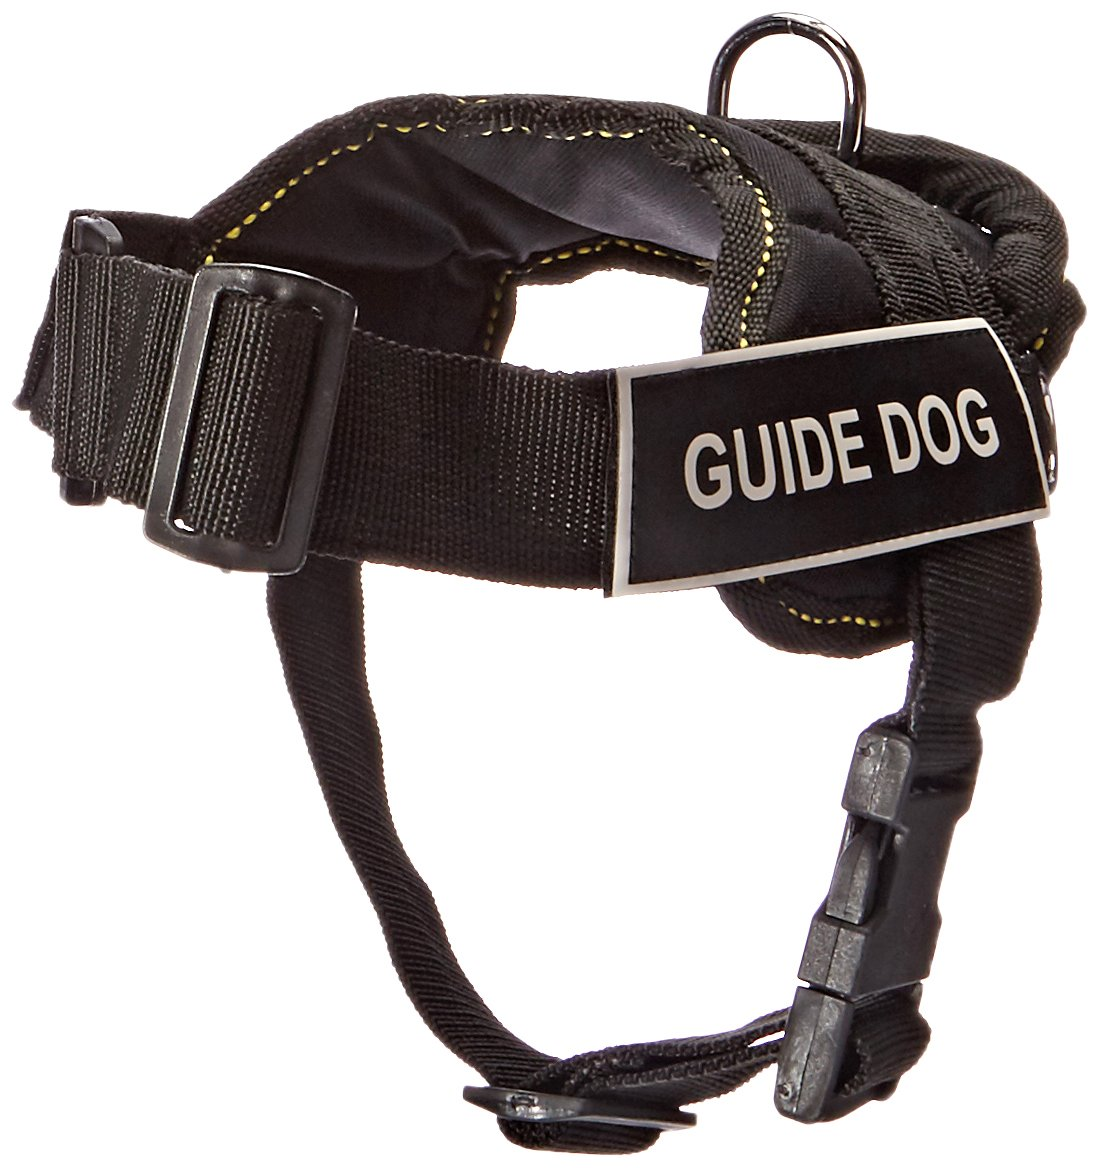 Dean & Tyler Fun Works Harness, Guide Dog, Black with Yellow Trim, X-Small, Fits Girth Size  20-Inch to 23-Inch